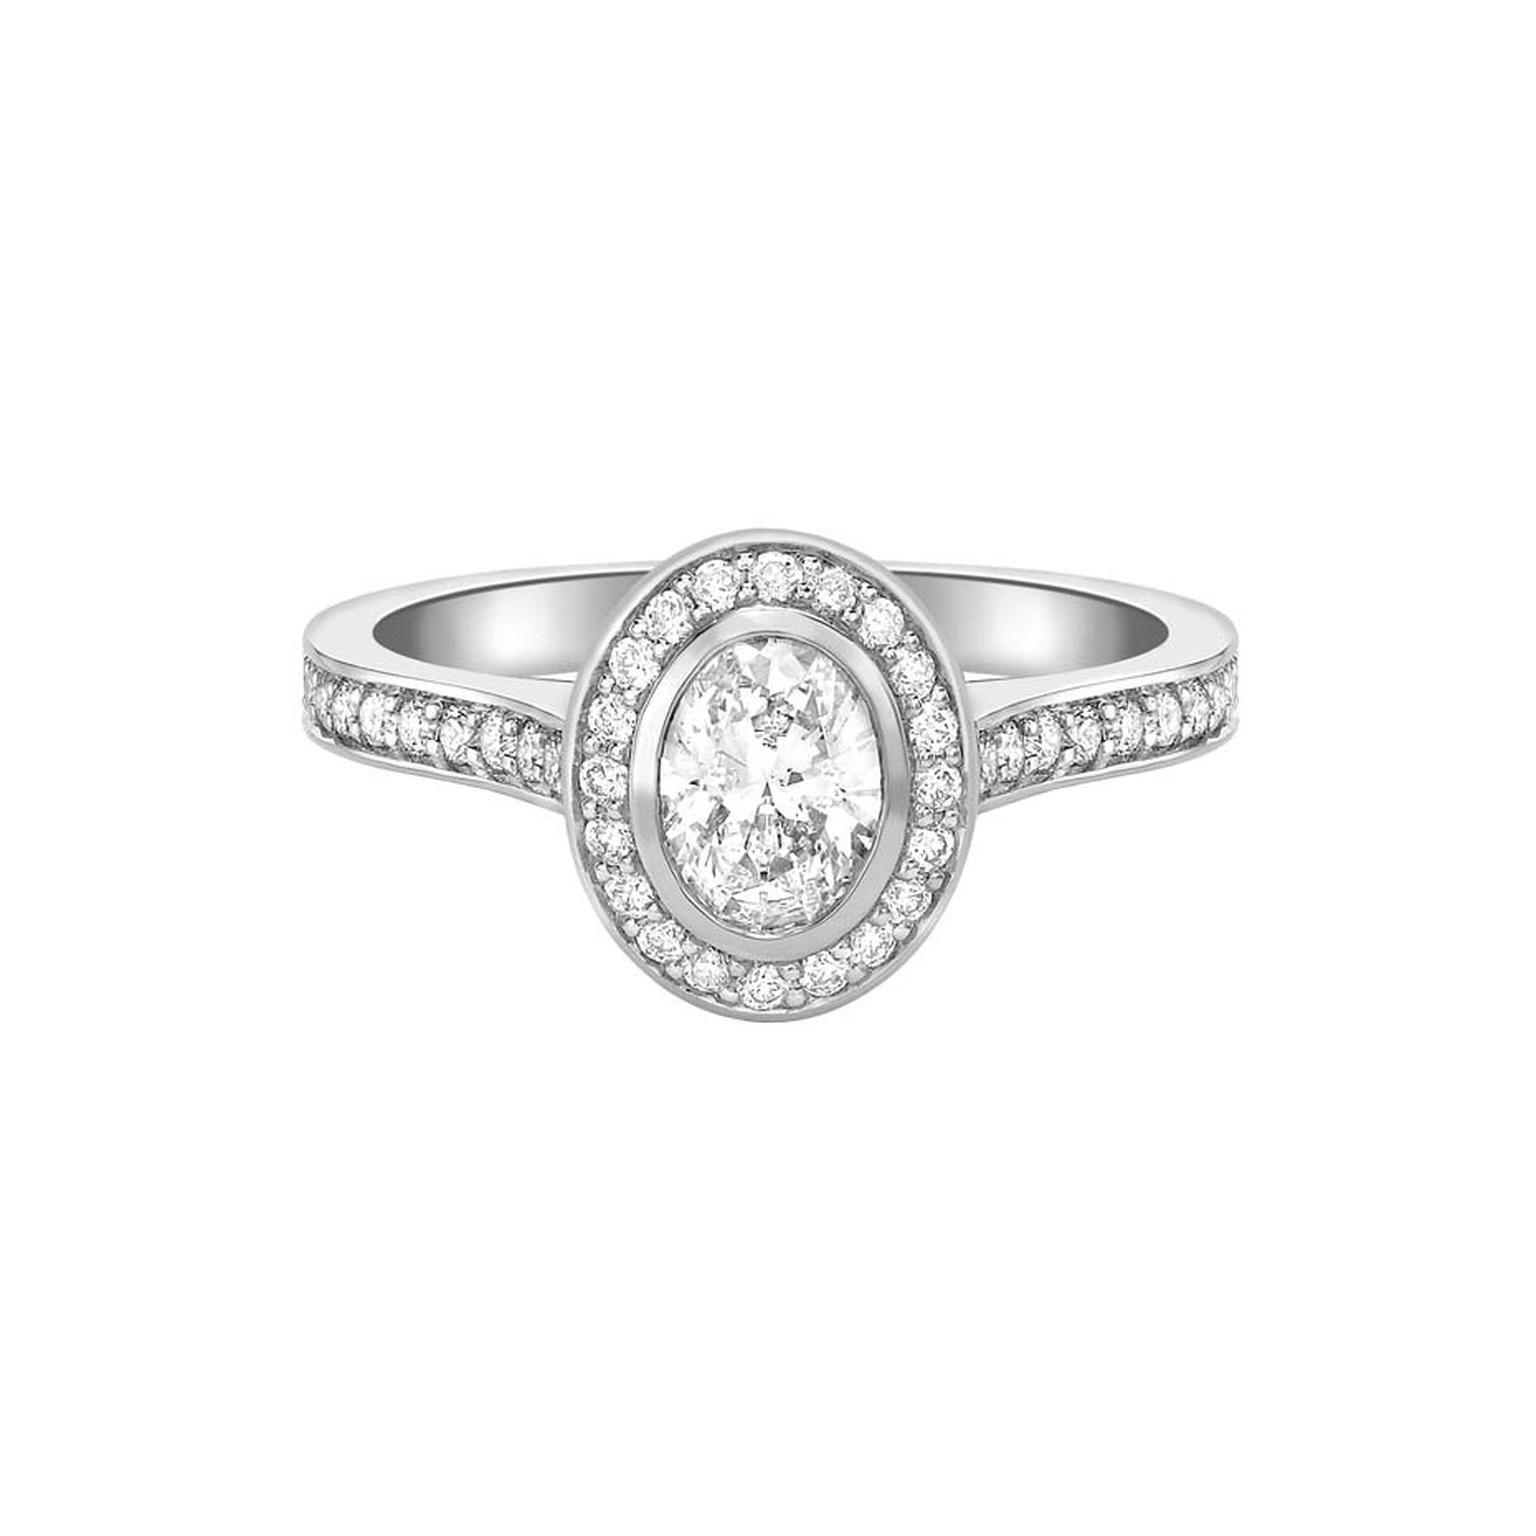 Ingle & Rhode Pavane diamond engagement ring set with a 0.5ct oval-cut diamond in platinum (£3,995).